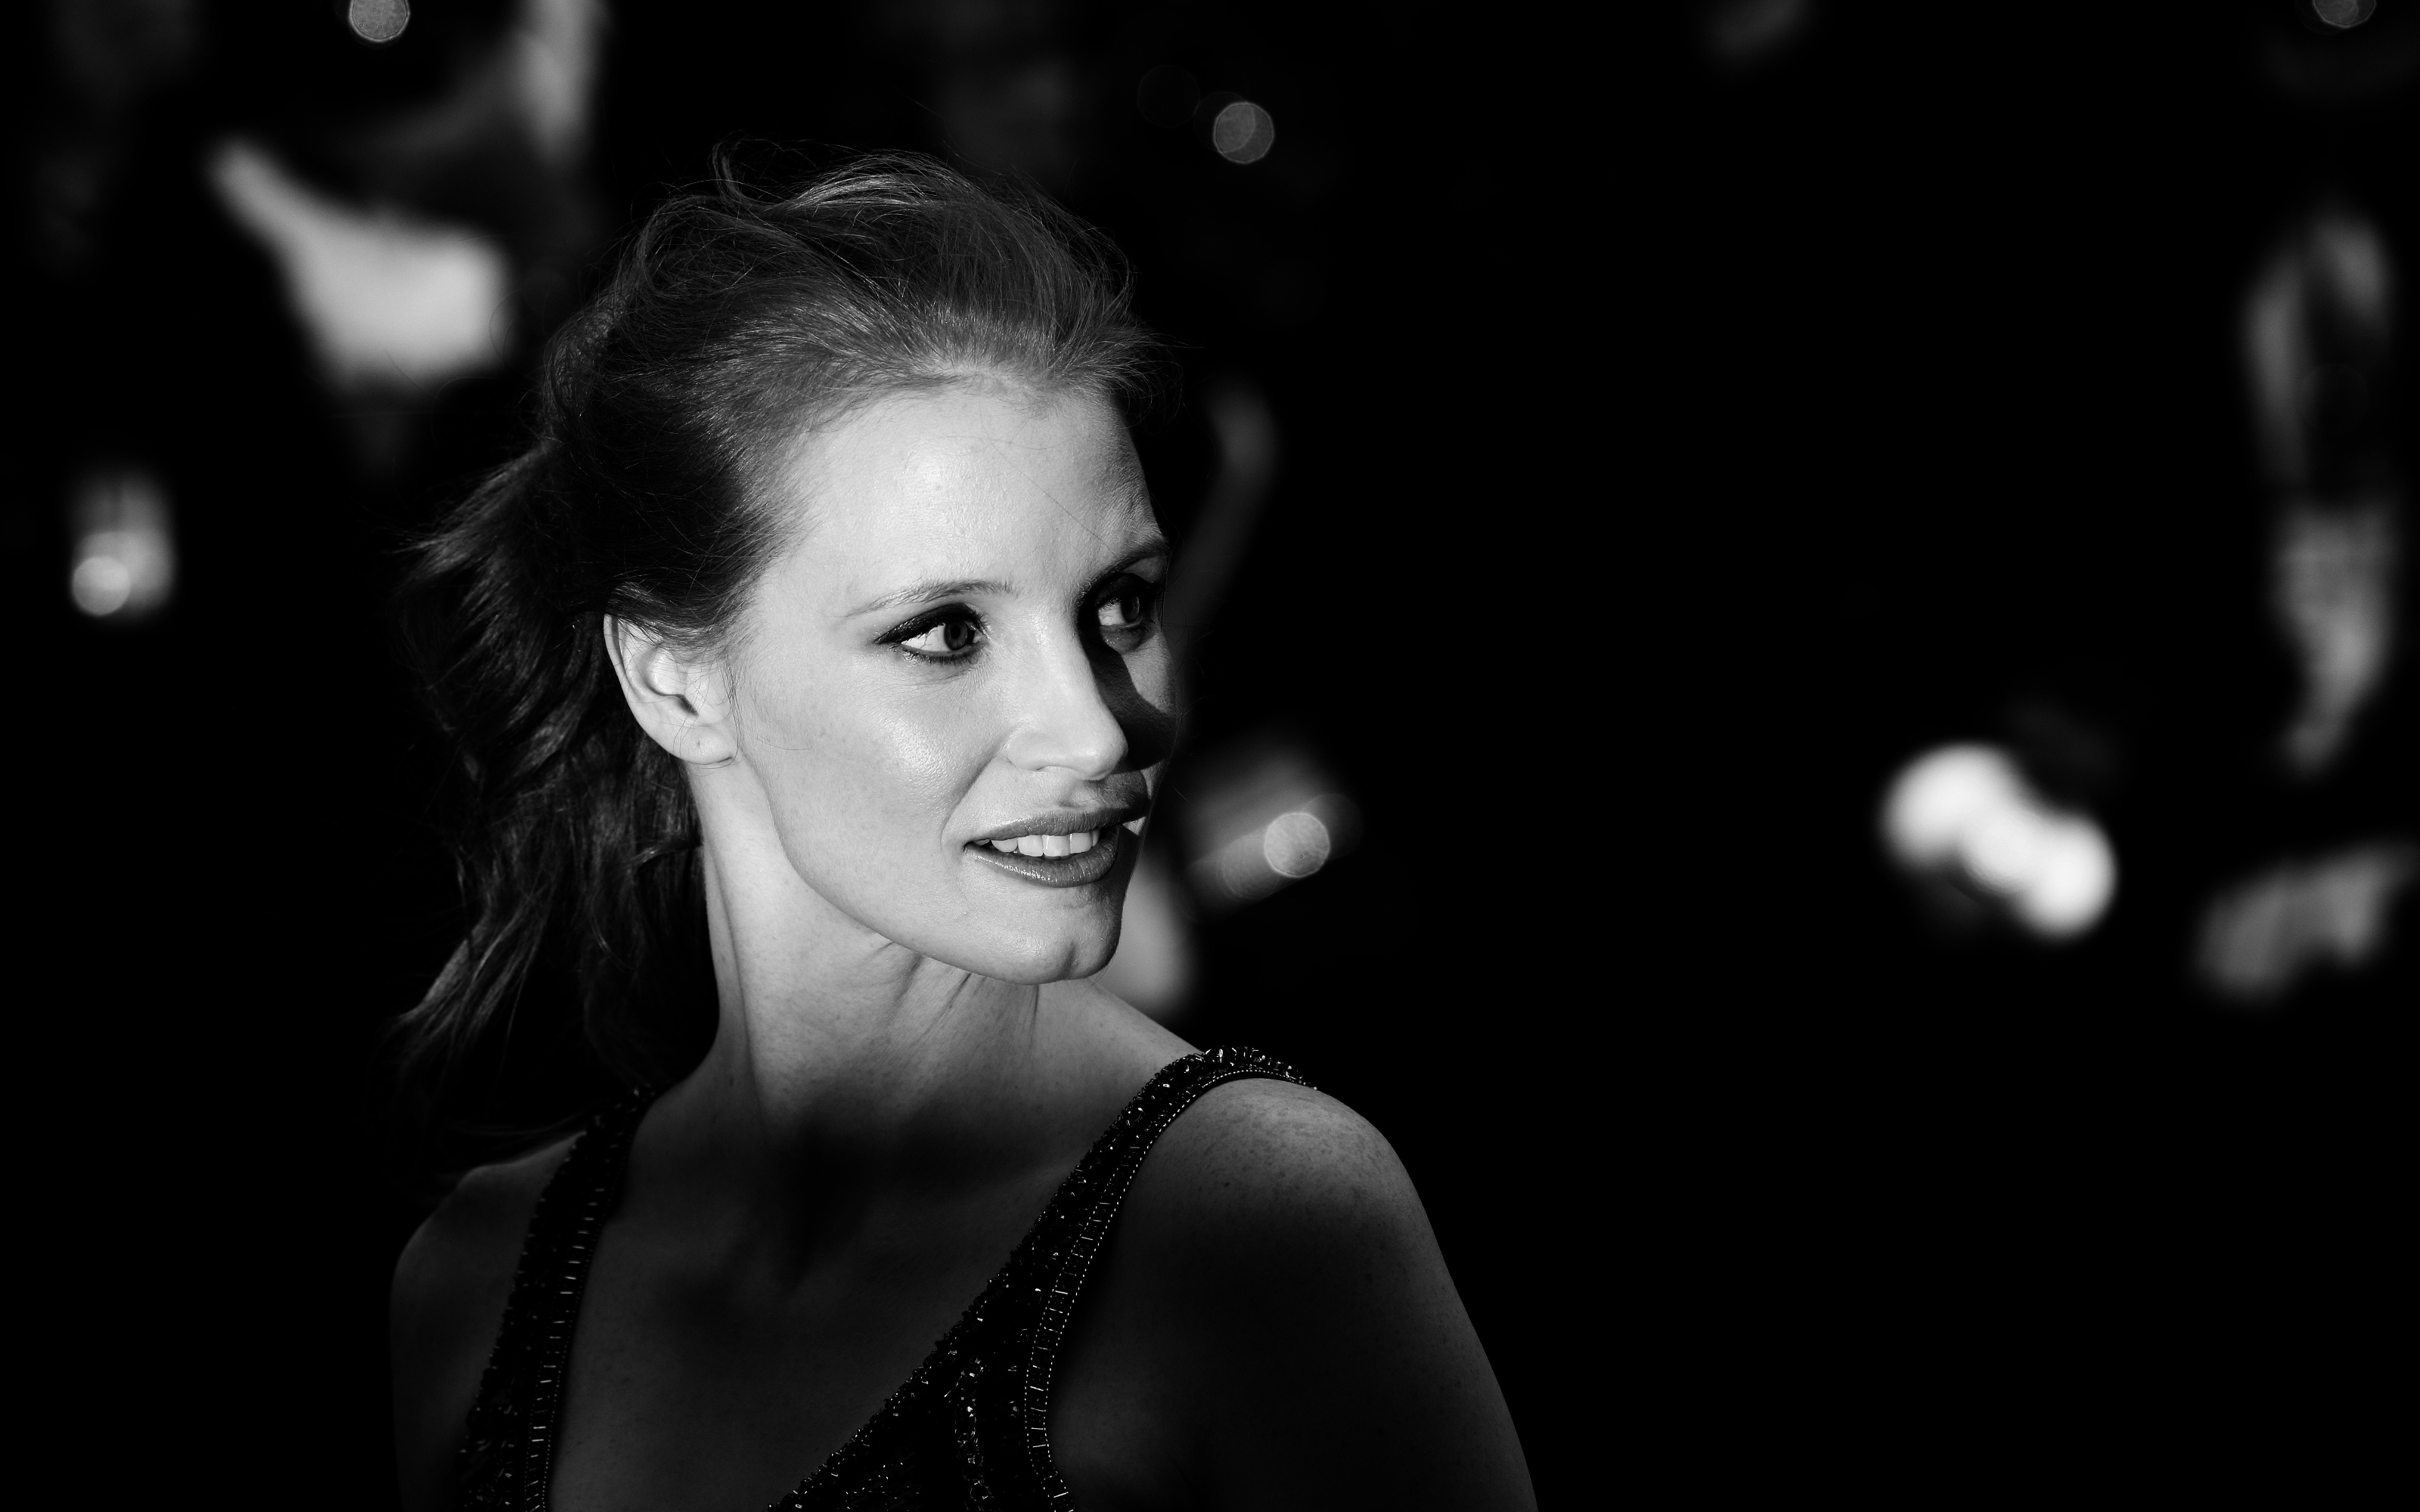 3200x2000 - Jessica Chastain Wallpapers 27